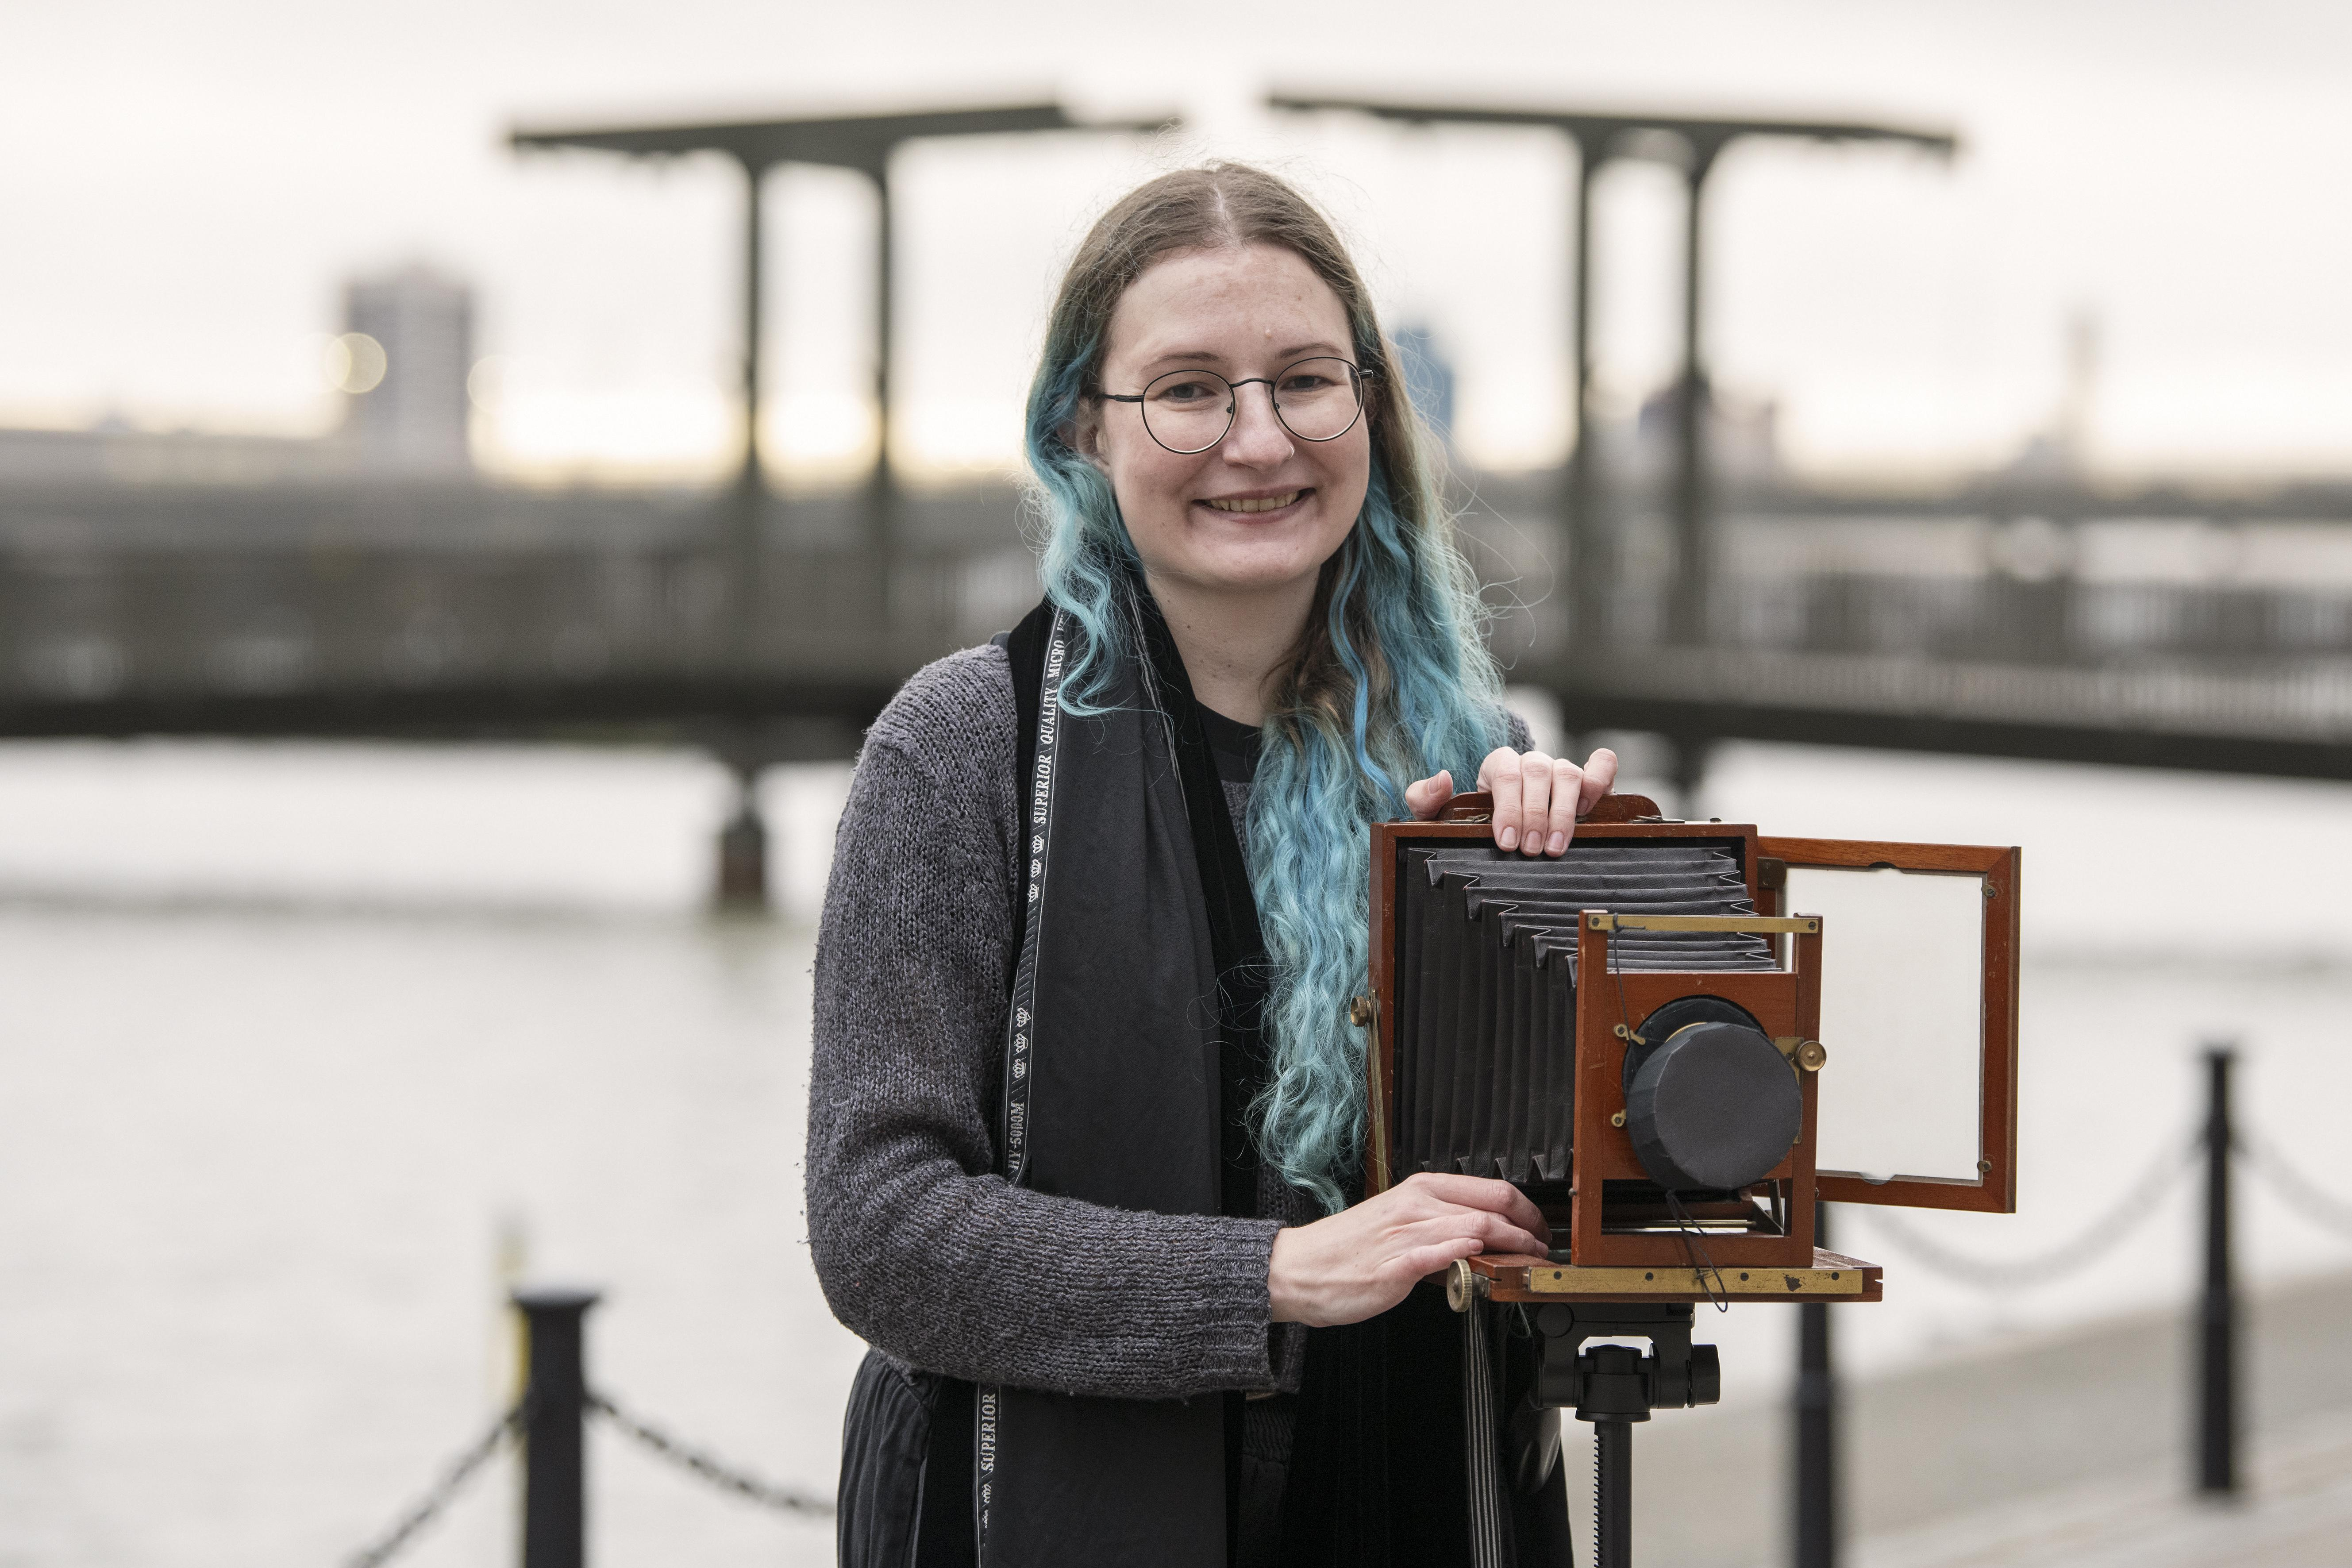 Woman by dock edge with antique camera